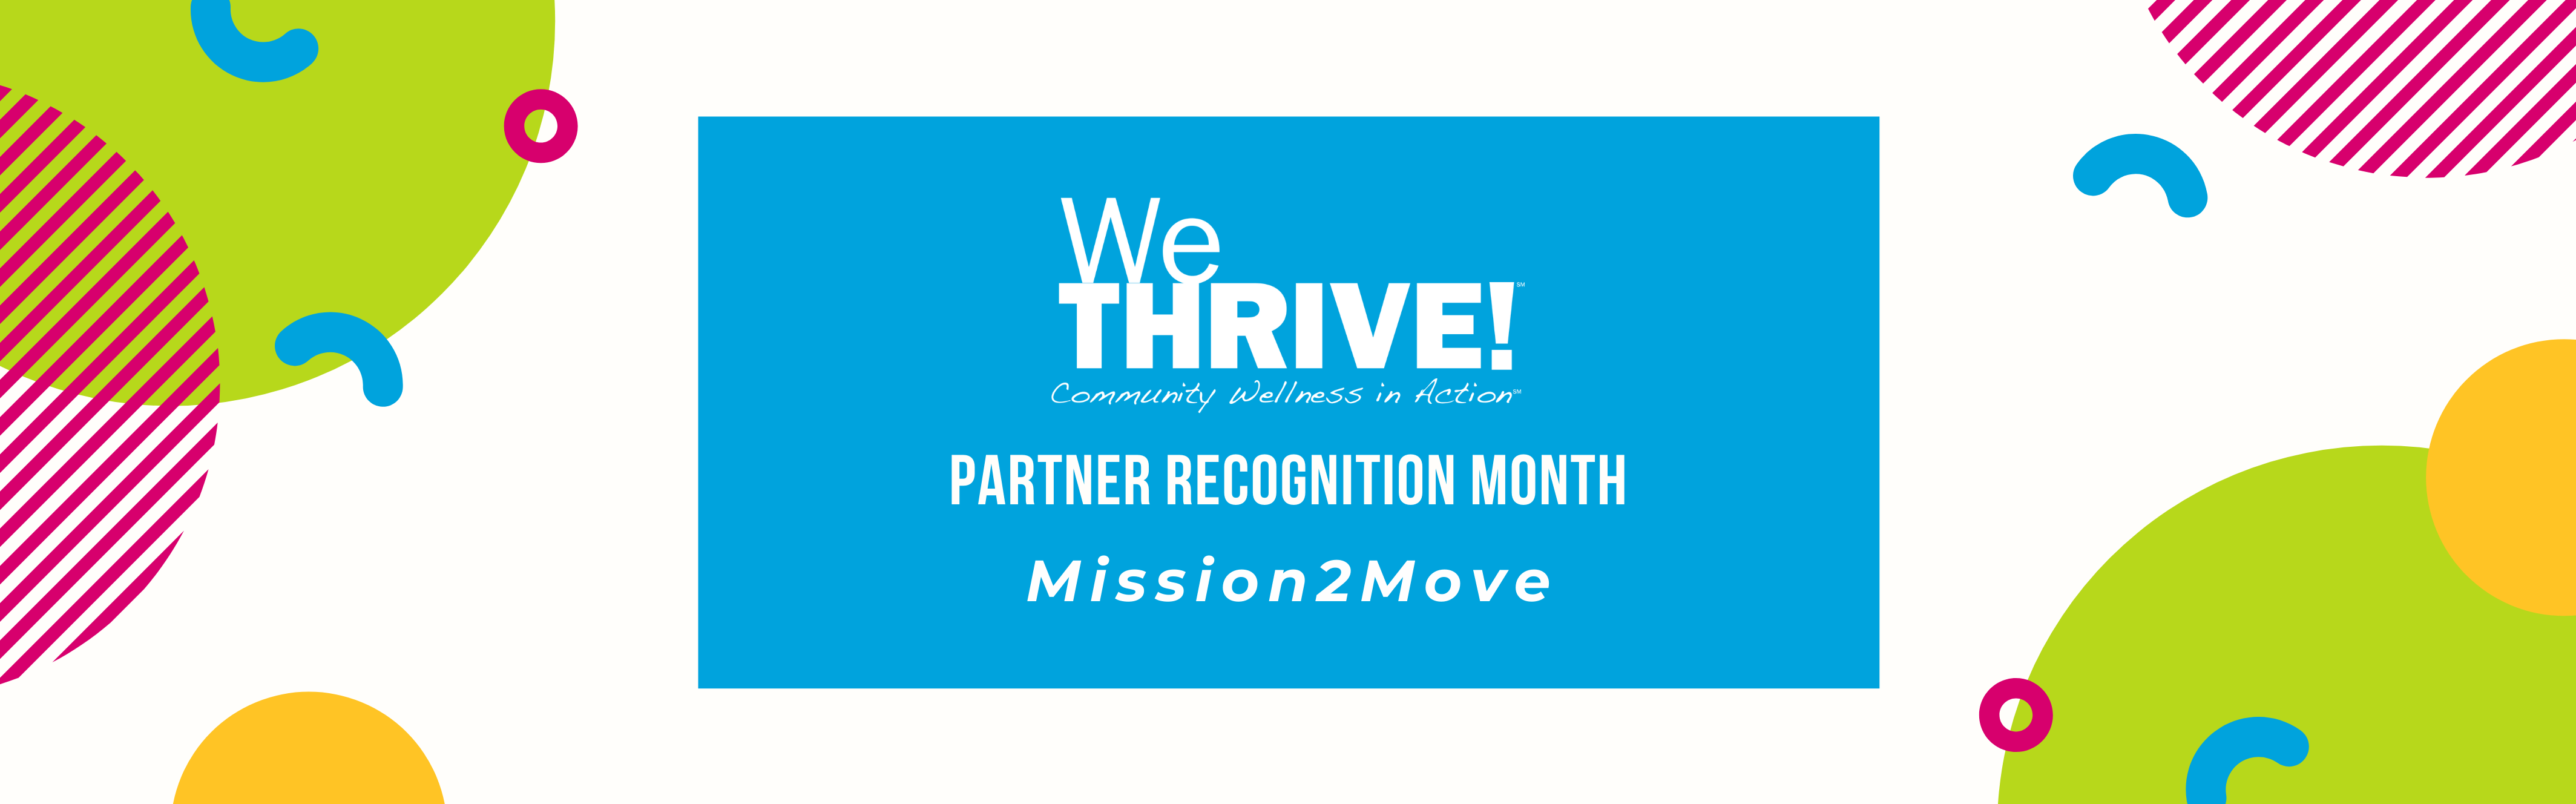 we thrive logo then underneath it reads partner recognition month mission 2 move